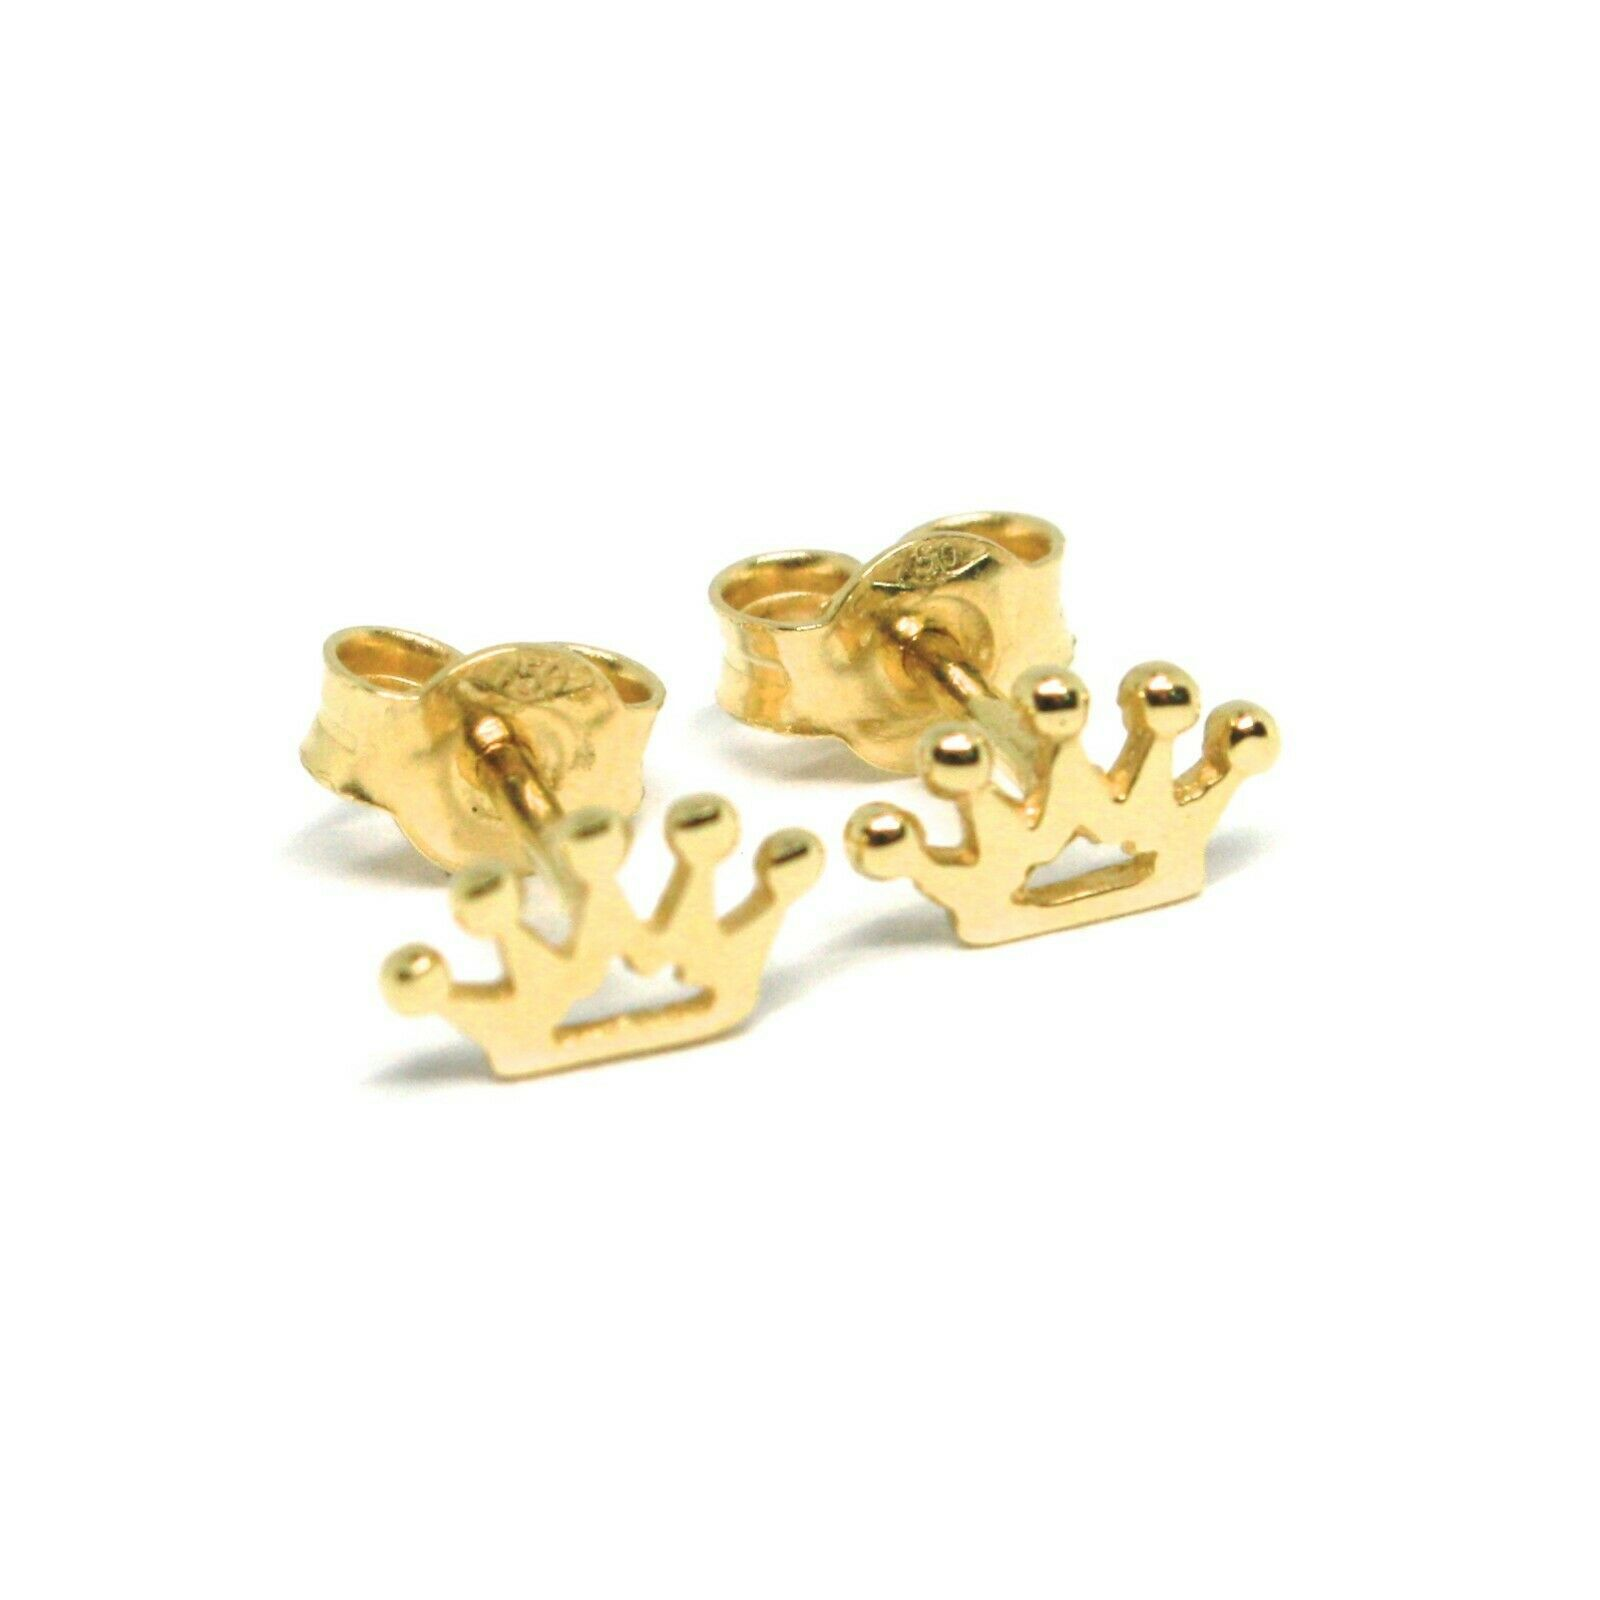 18K YELLOW GOLD EARRINGS, FLAT MINI CROWN, 0.2 INCHES, BUTTERFLY CLOSURE